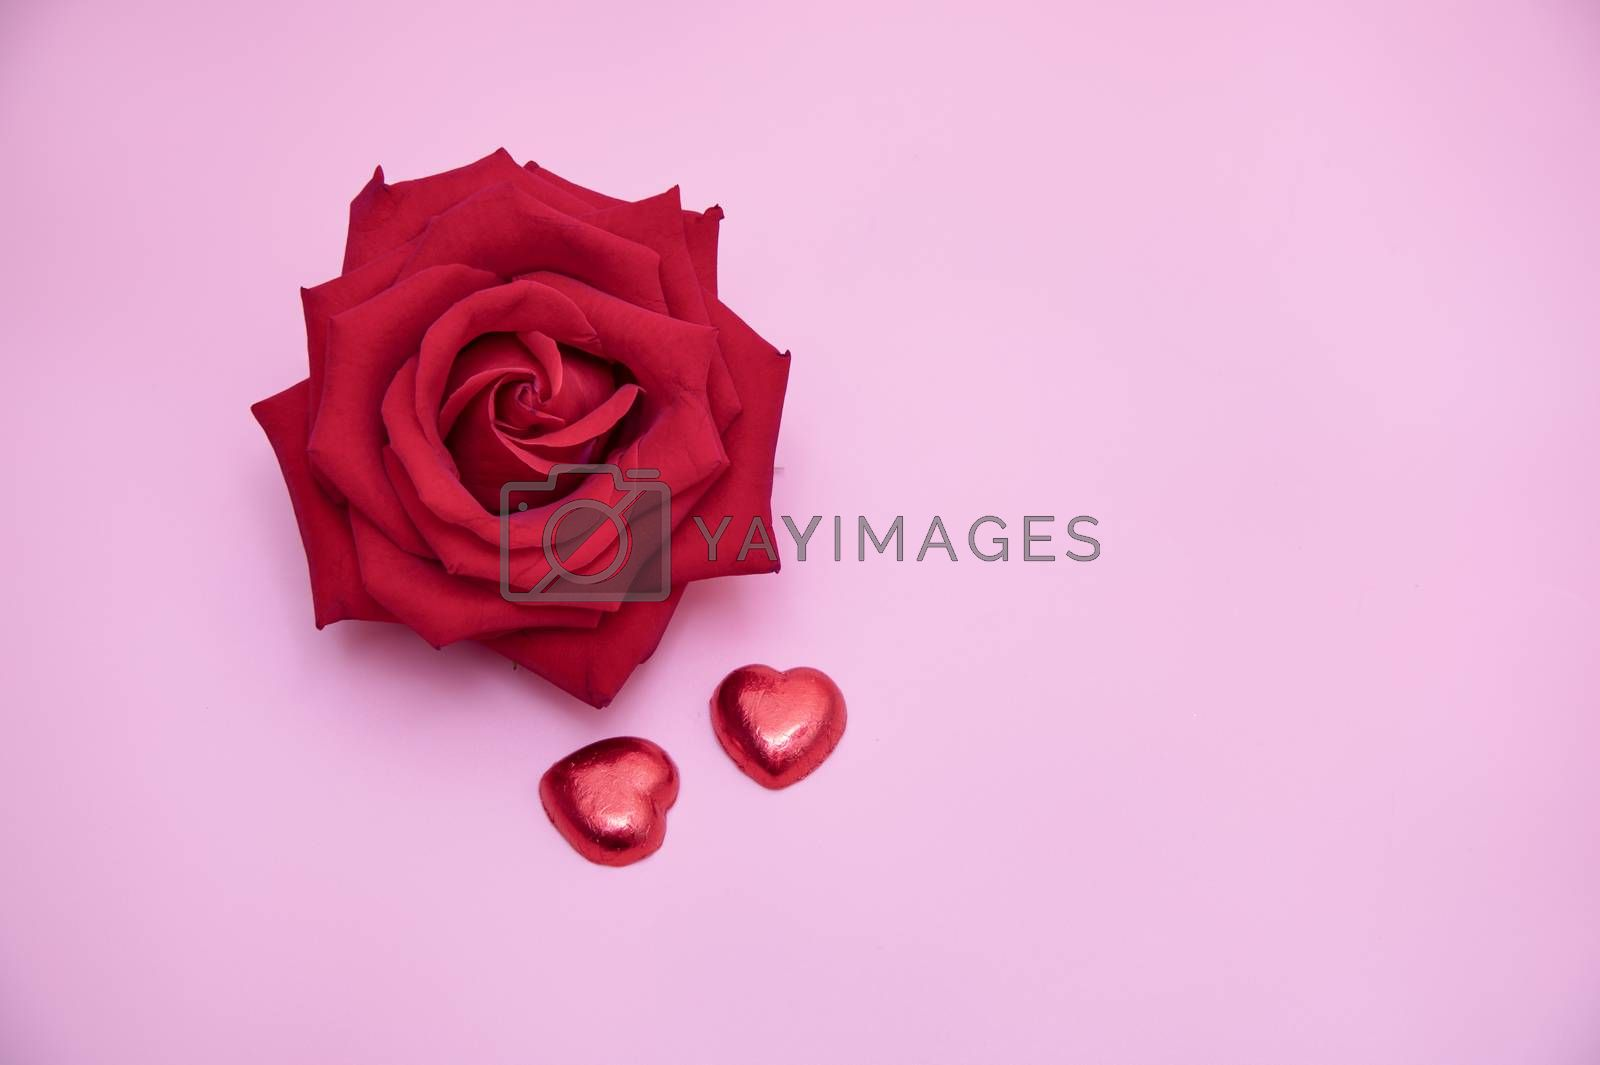 Closeup of a beautiful blooming red rose with red candy hearts on pink background. Valentine's, day  anniversary, wedding concept.